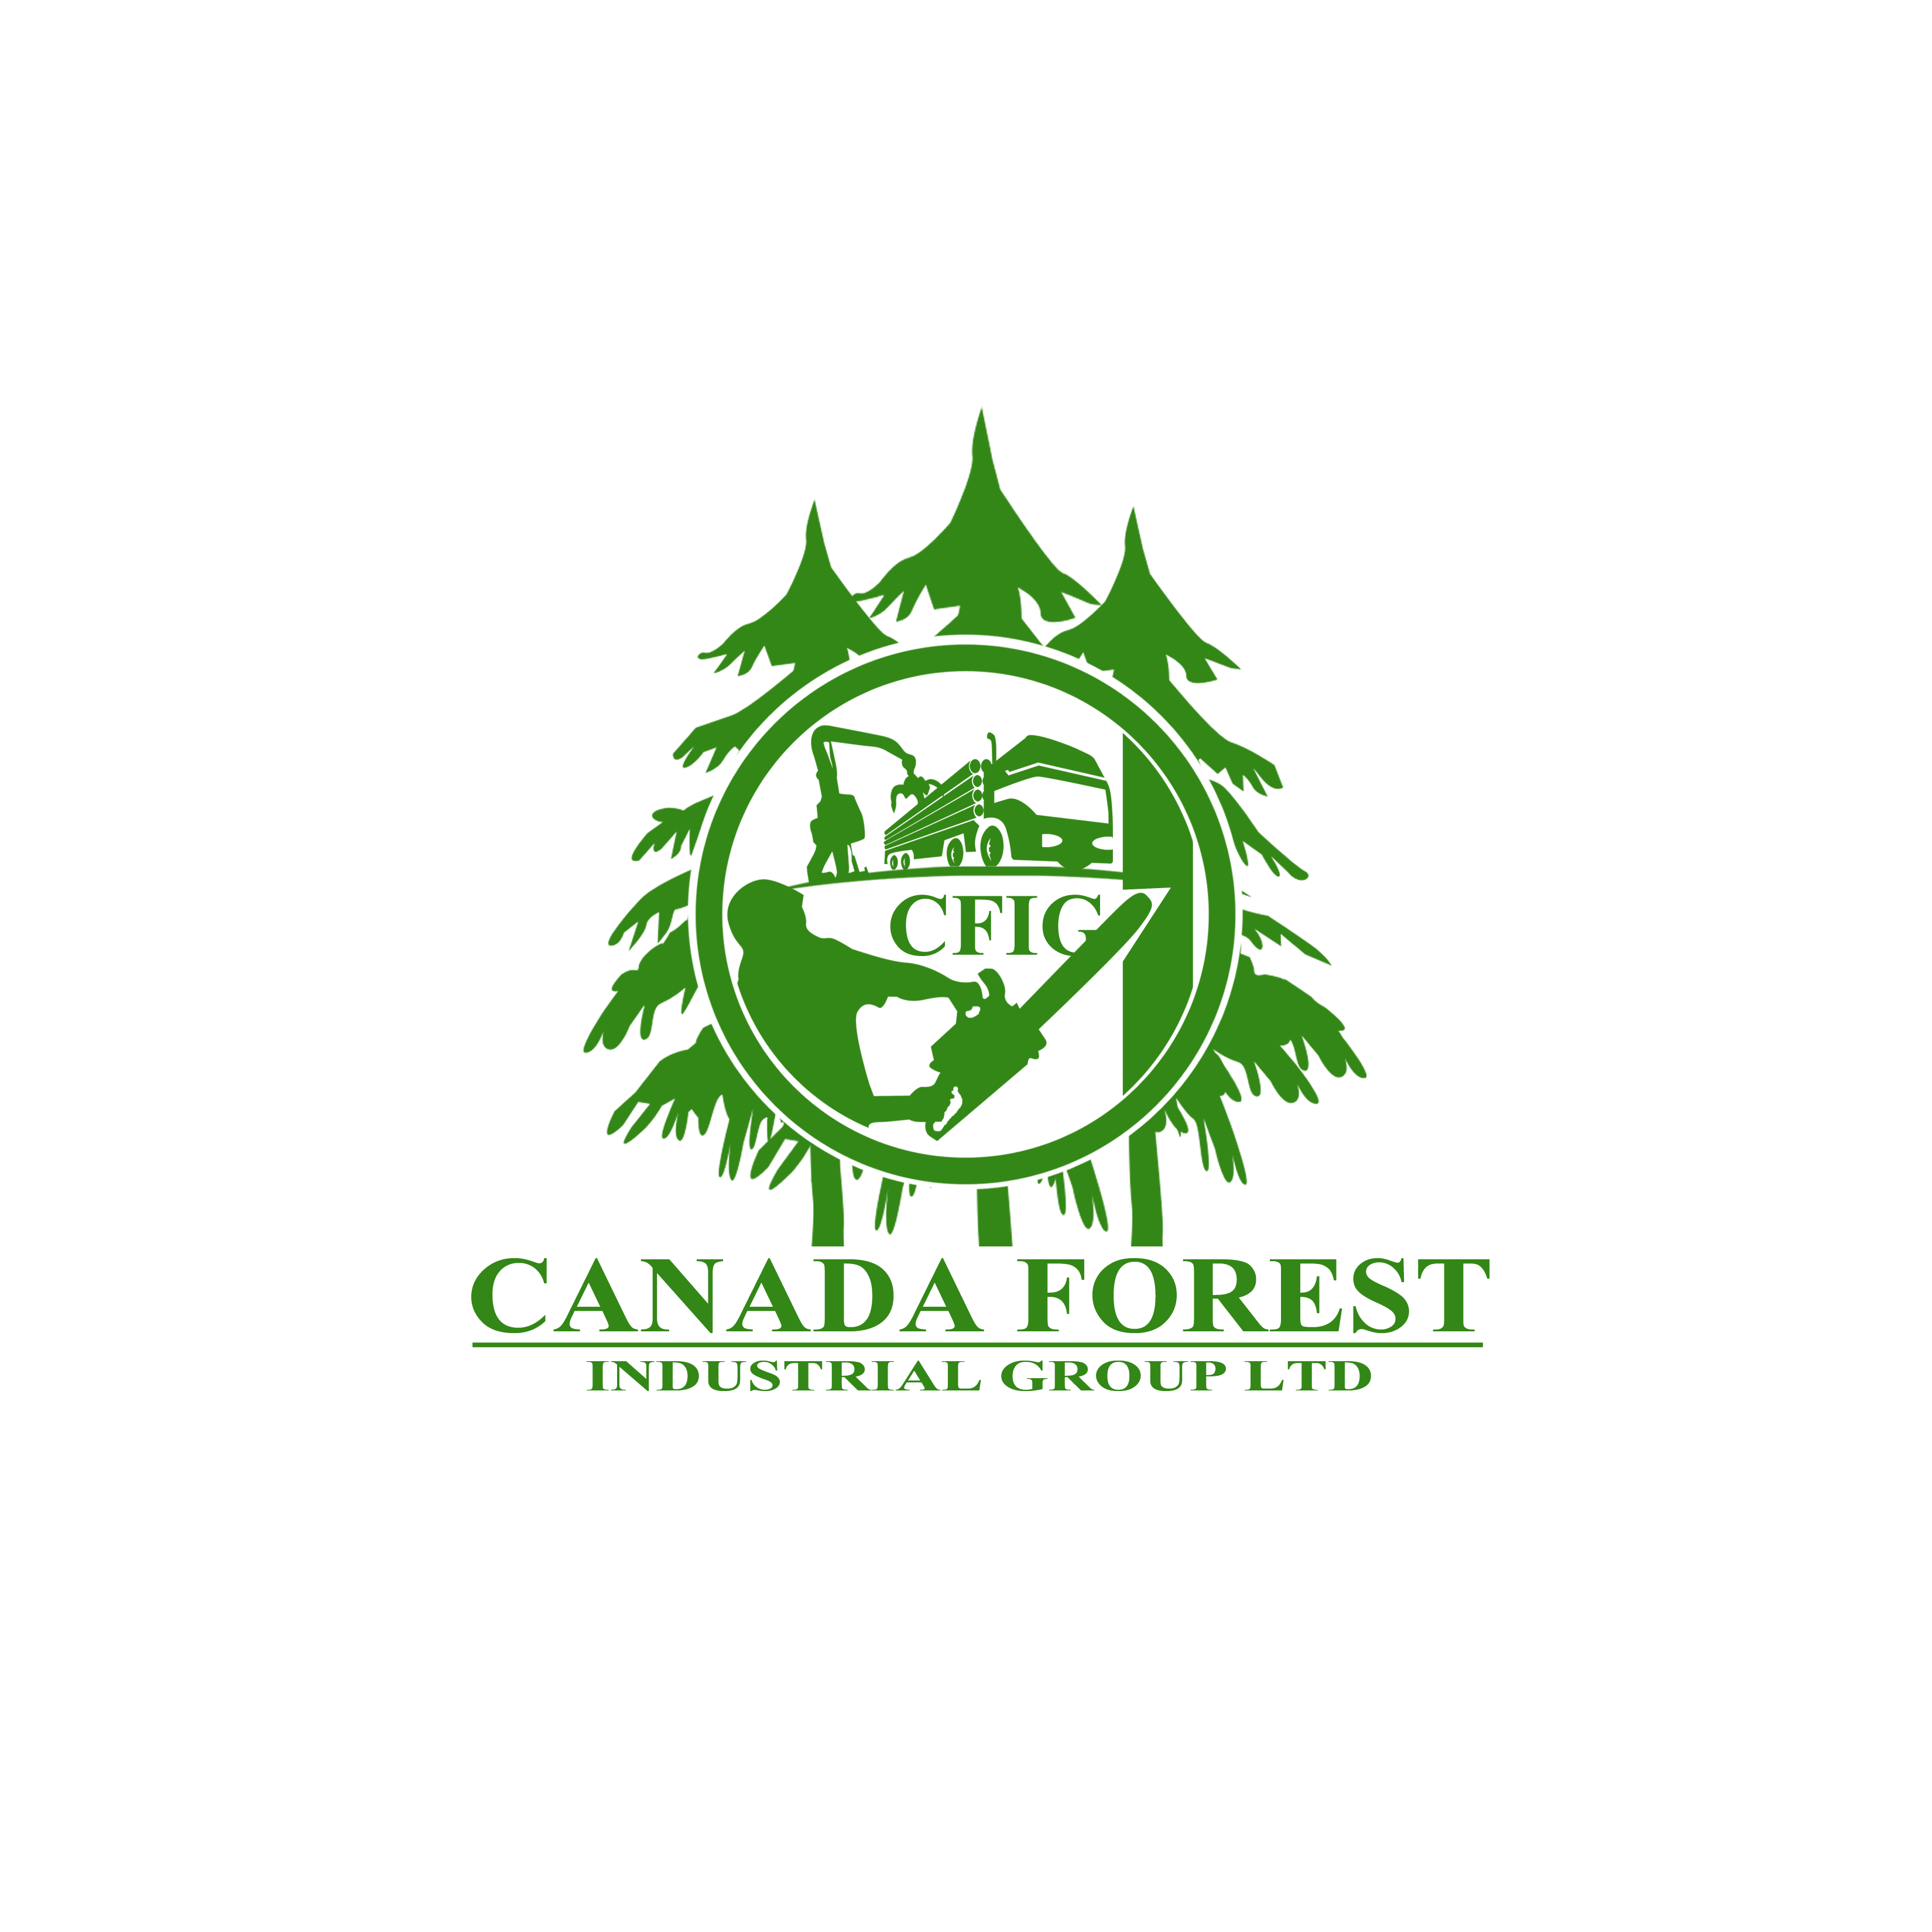 Logo Design by Allan Esclamado - Entry No. 118 in the Logo Design Contest Creative Logo Design for Canada Forest Industrial Group Ltd..